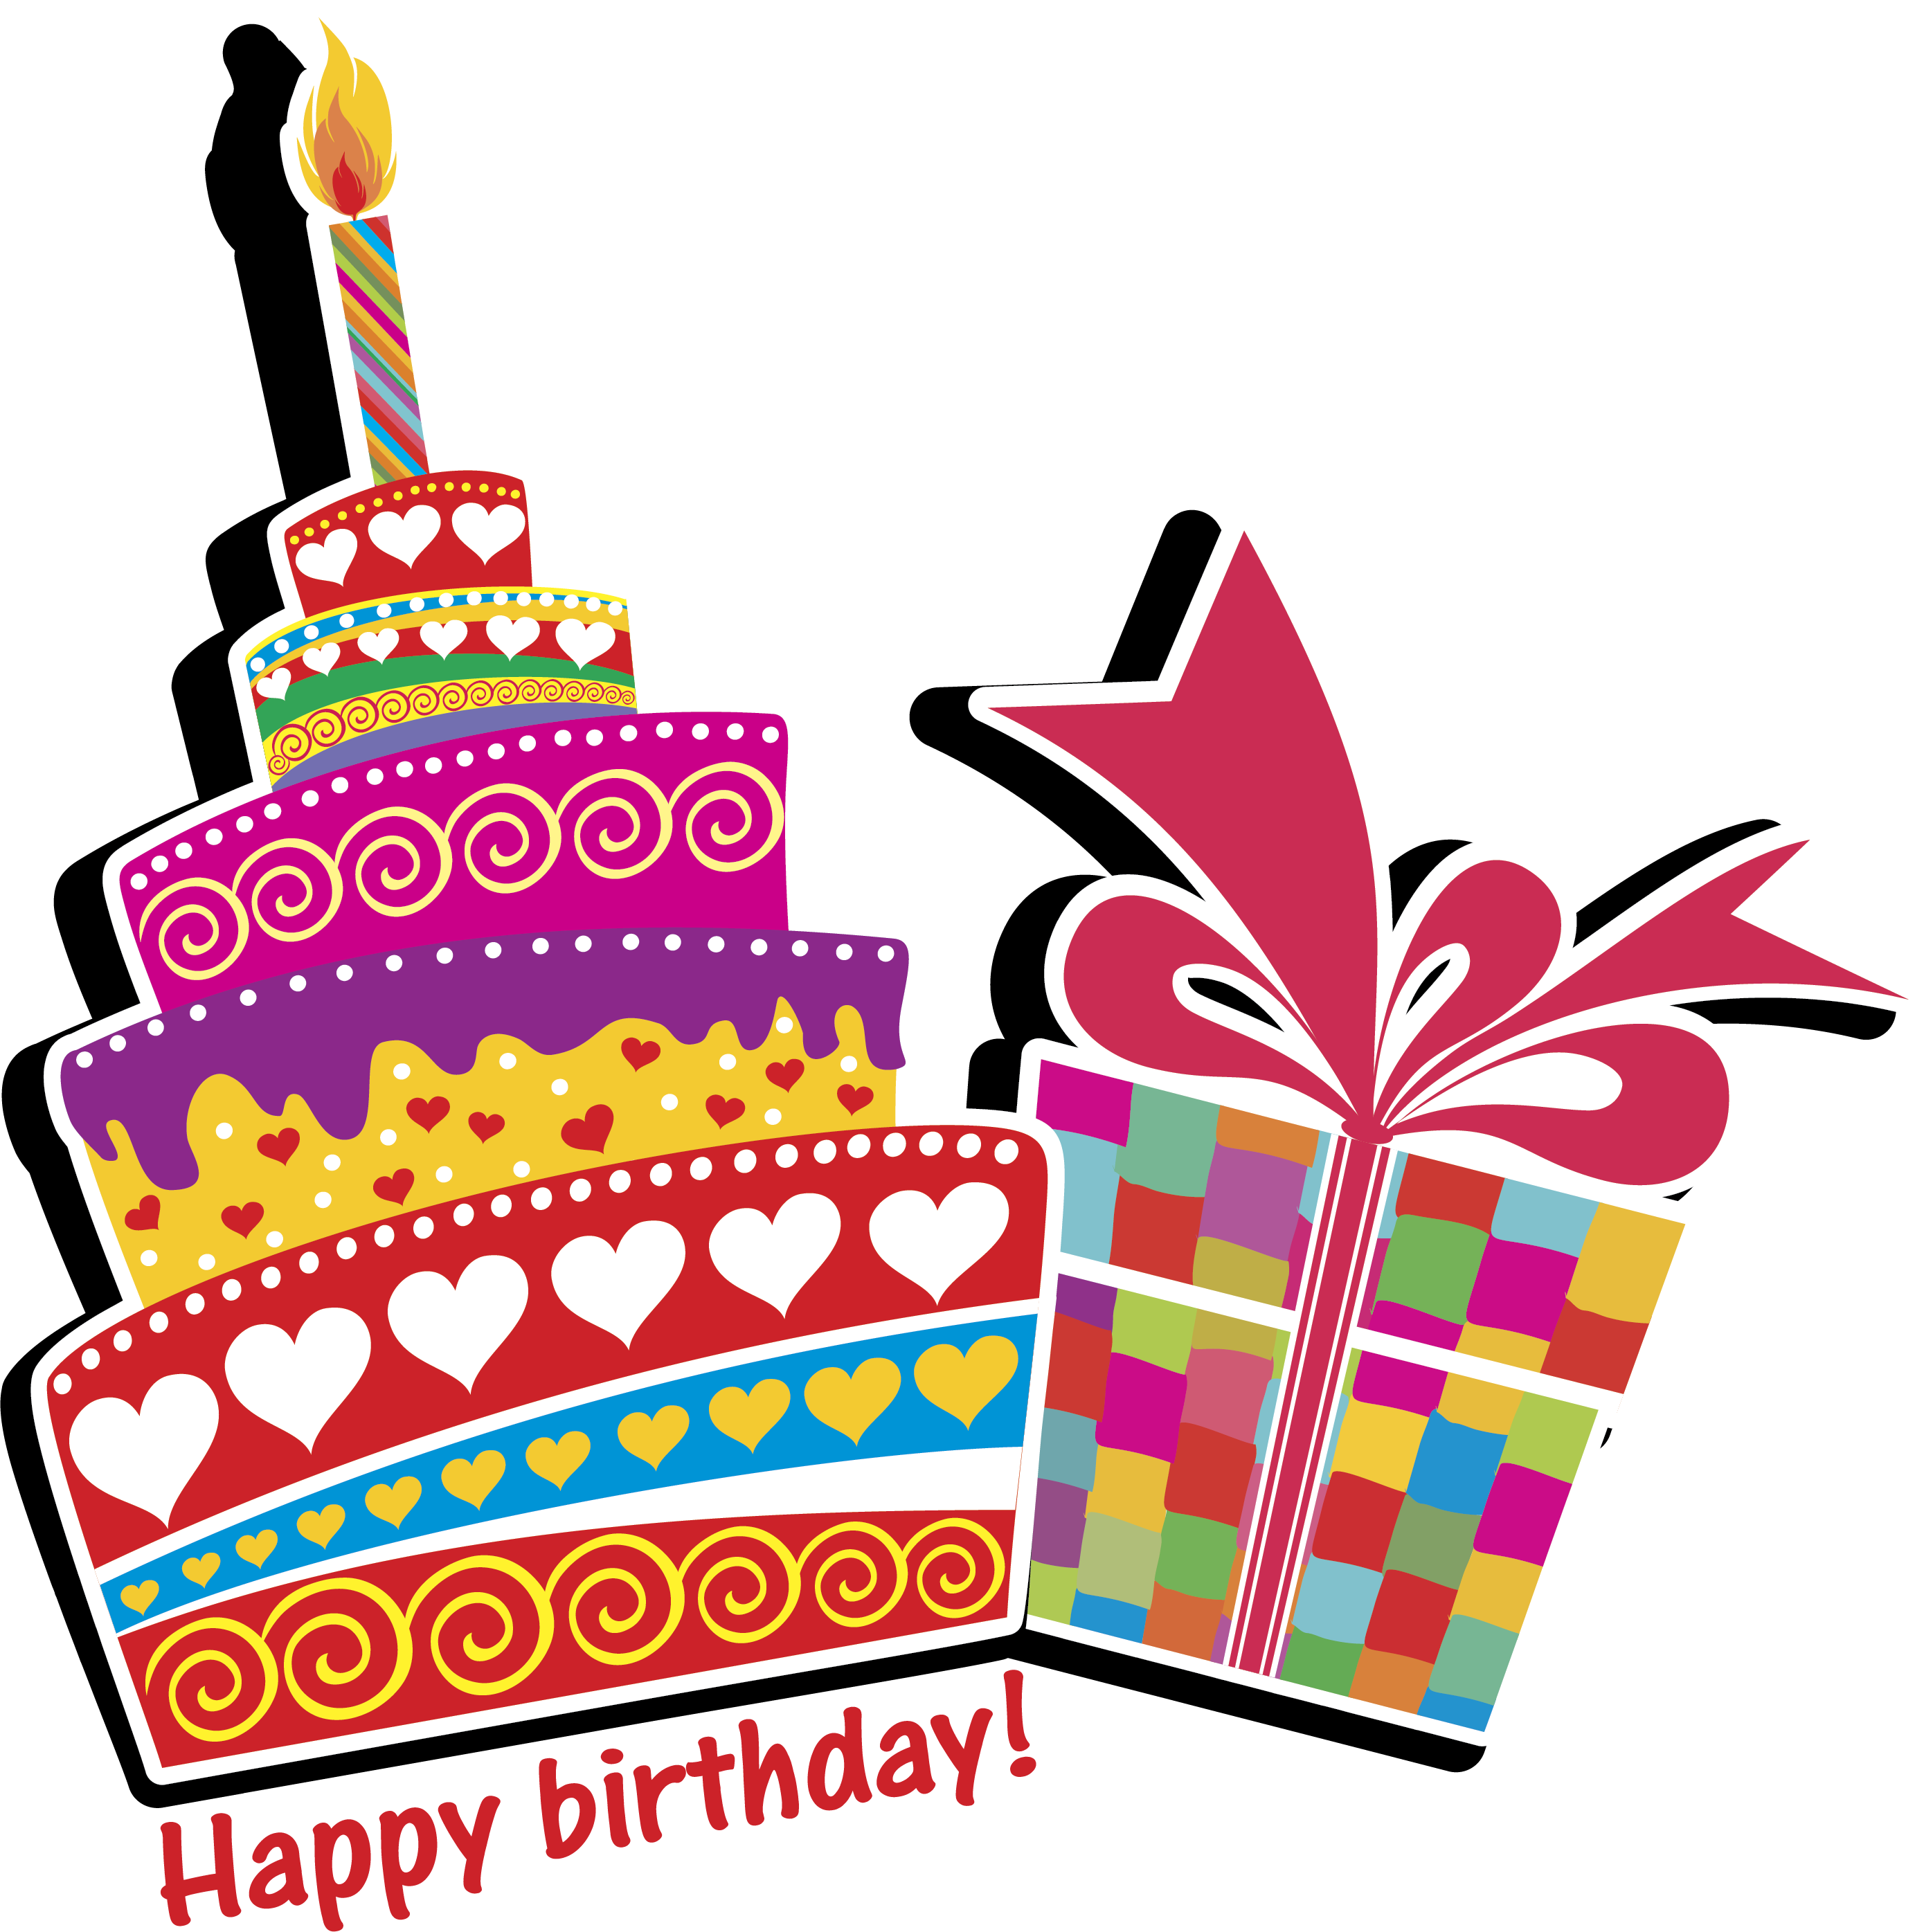 Happy birthday banner background png. Transparent images all free